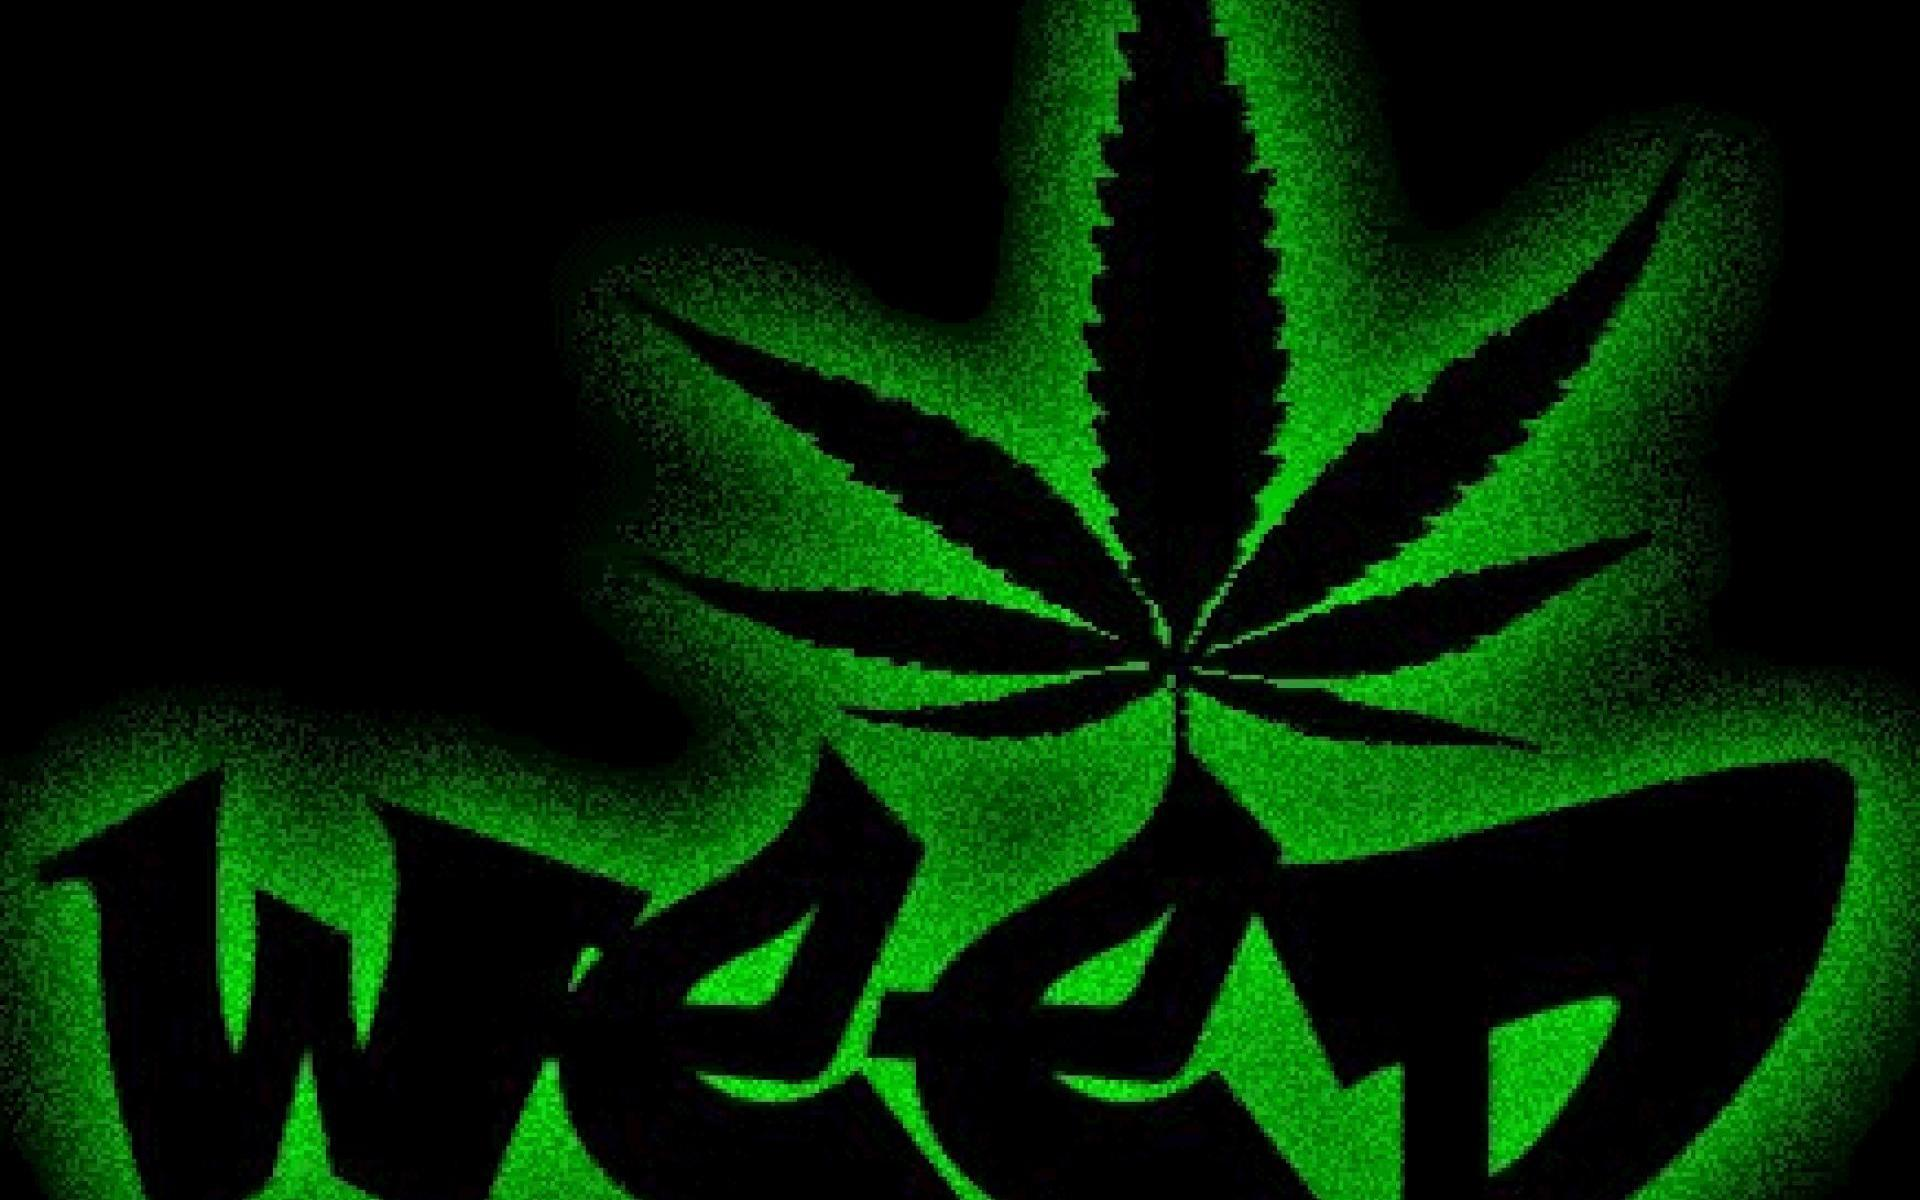 VG:33 - Weed Wallpapers, 100% Quality HD Awesome Weed Pics Collection · Download